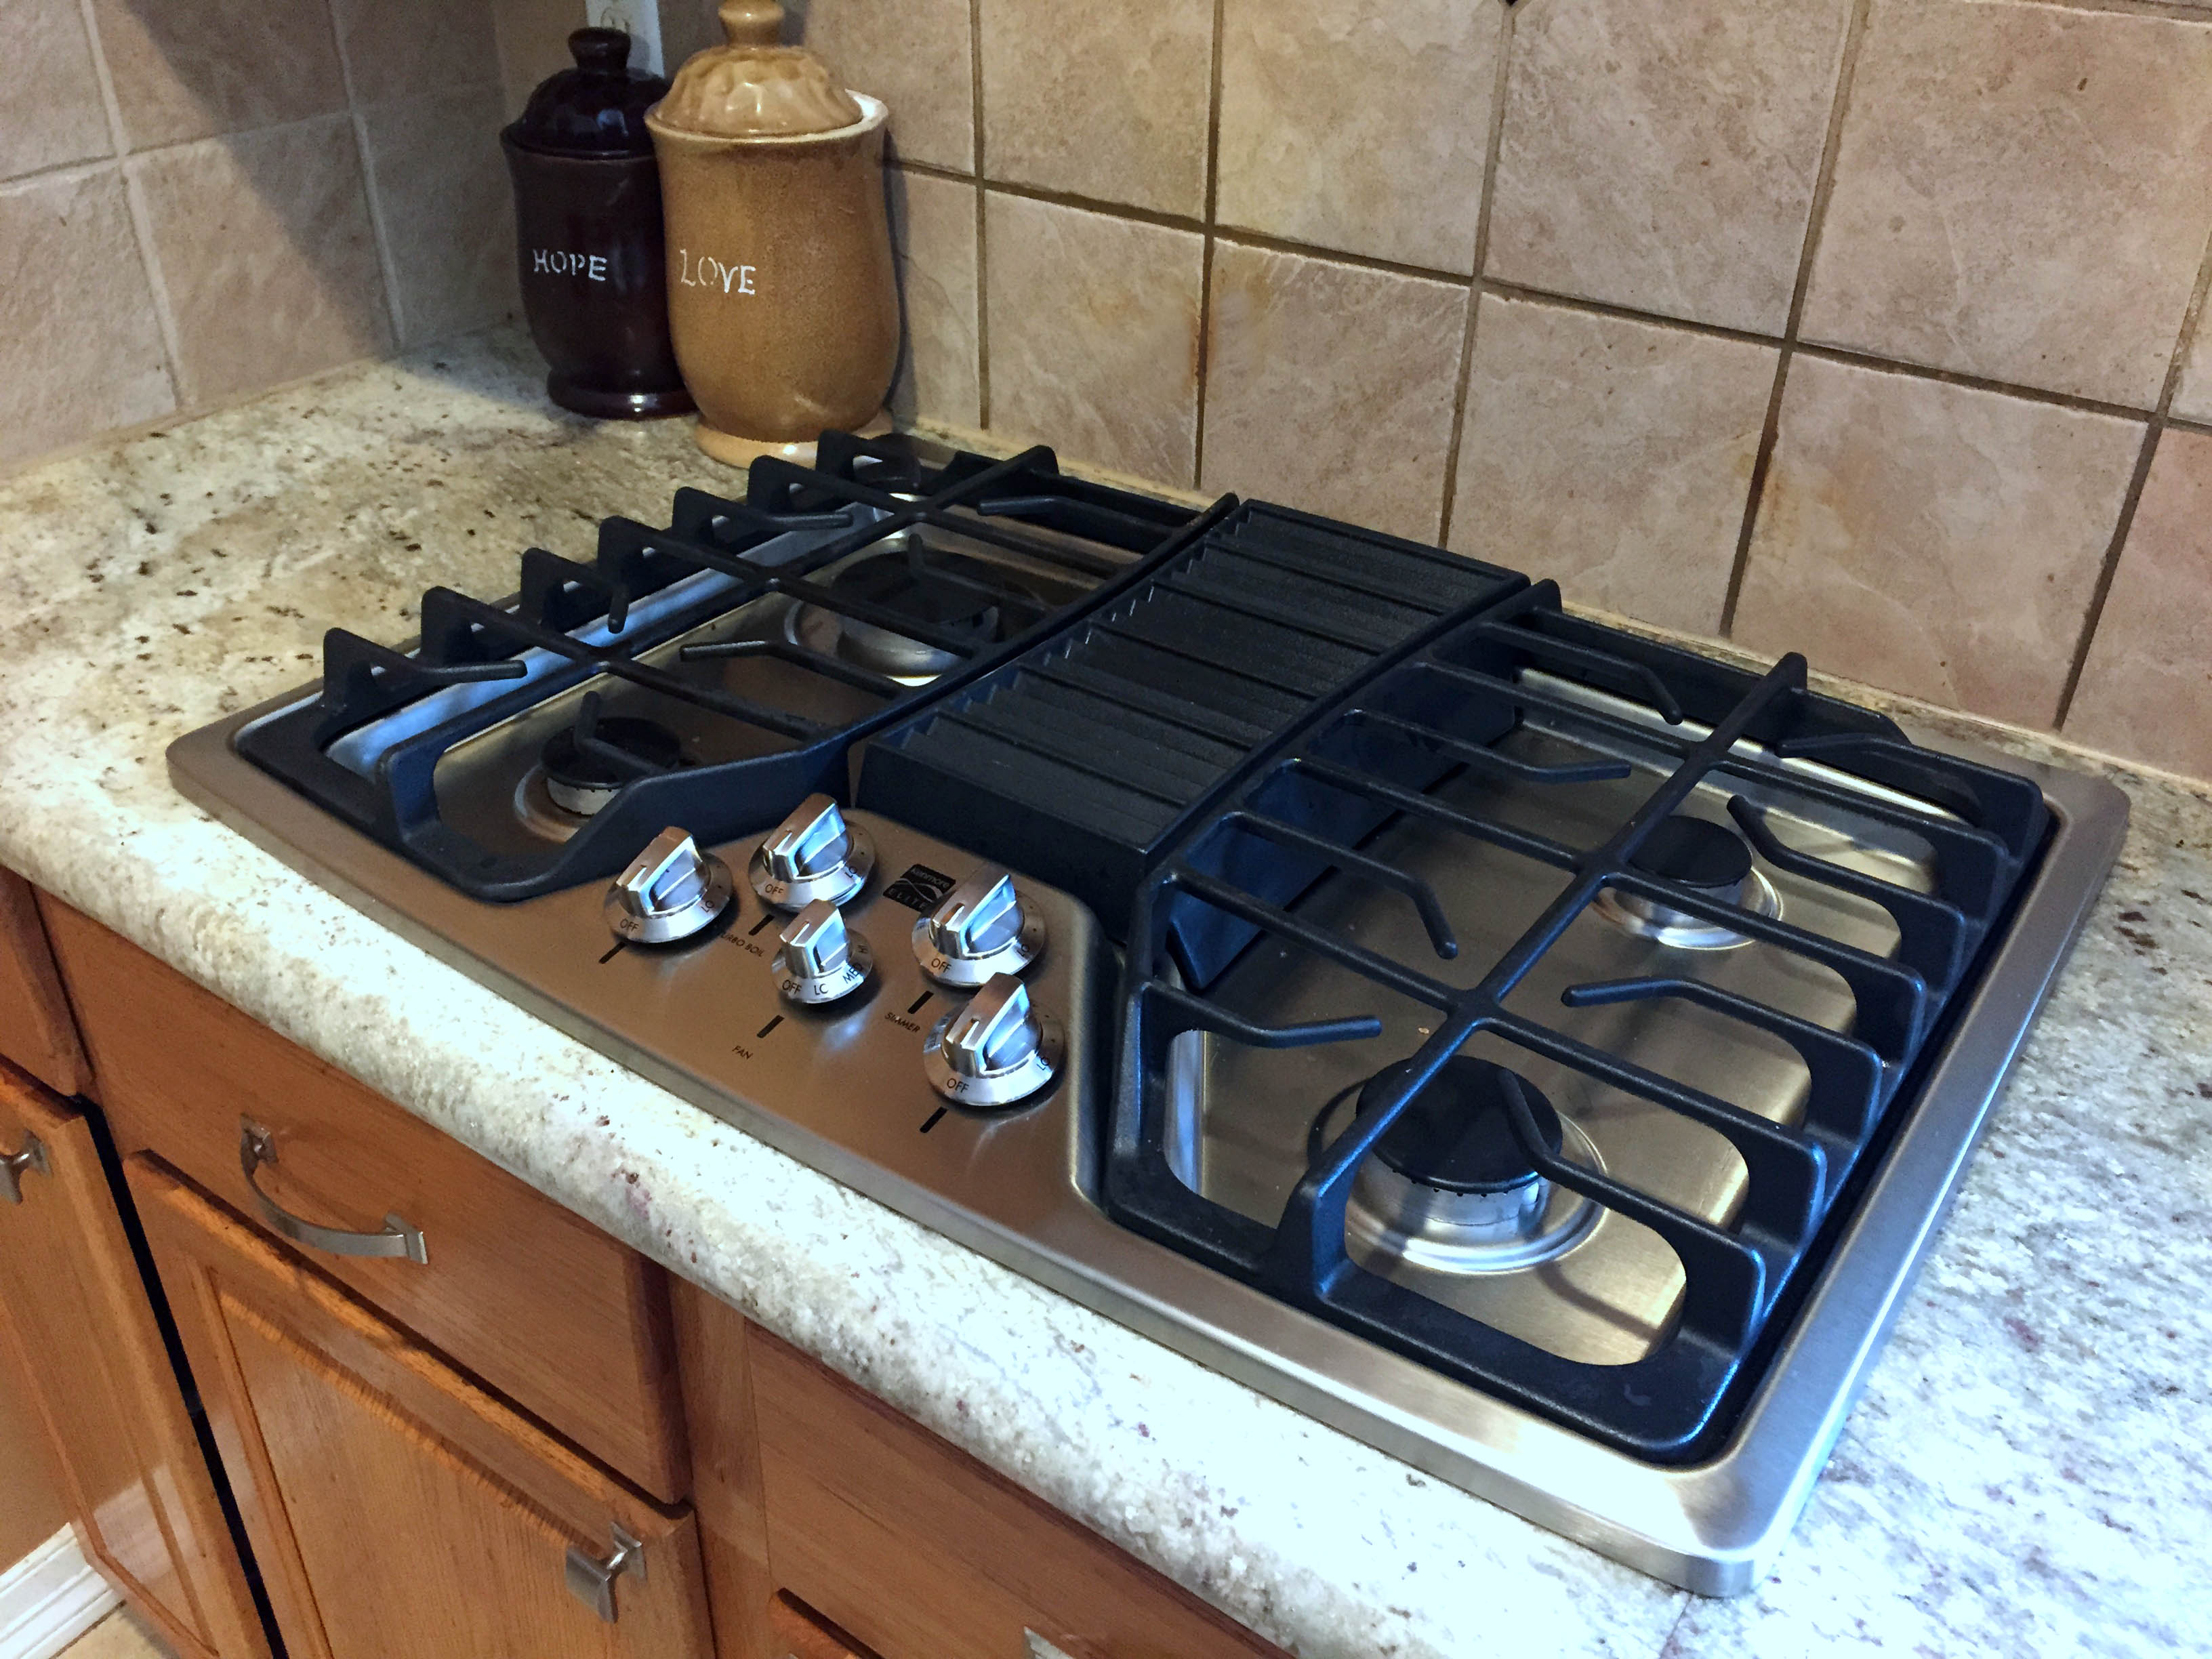 Cooktop Gas Stoves Simple Ideas About 30 Gas Cooktop With Downdraft Homesfeed